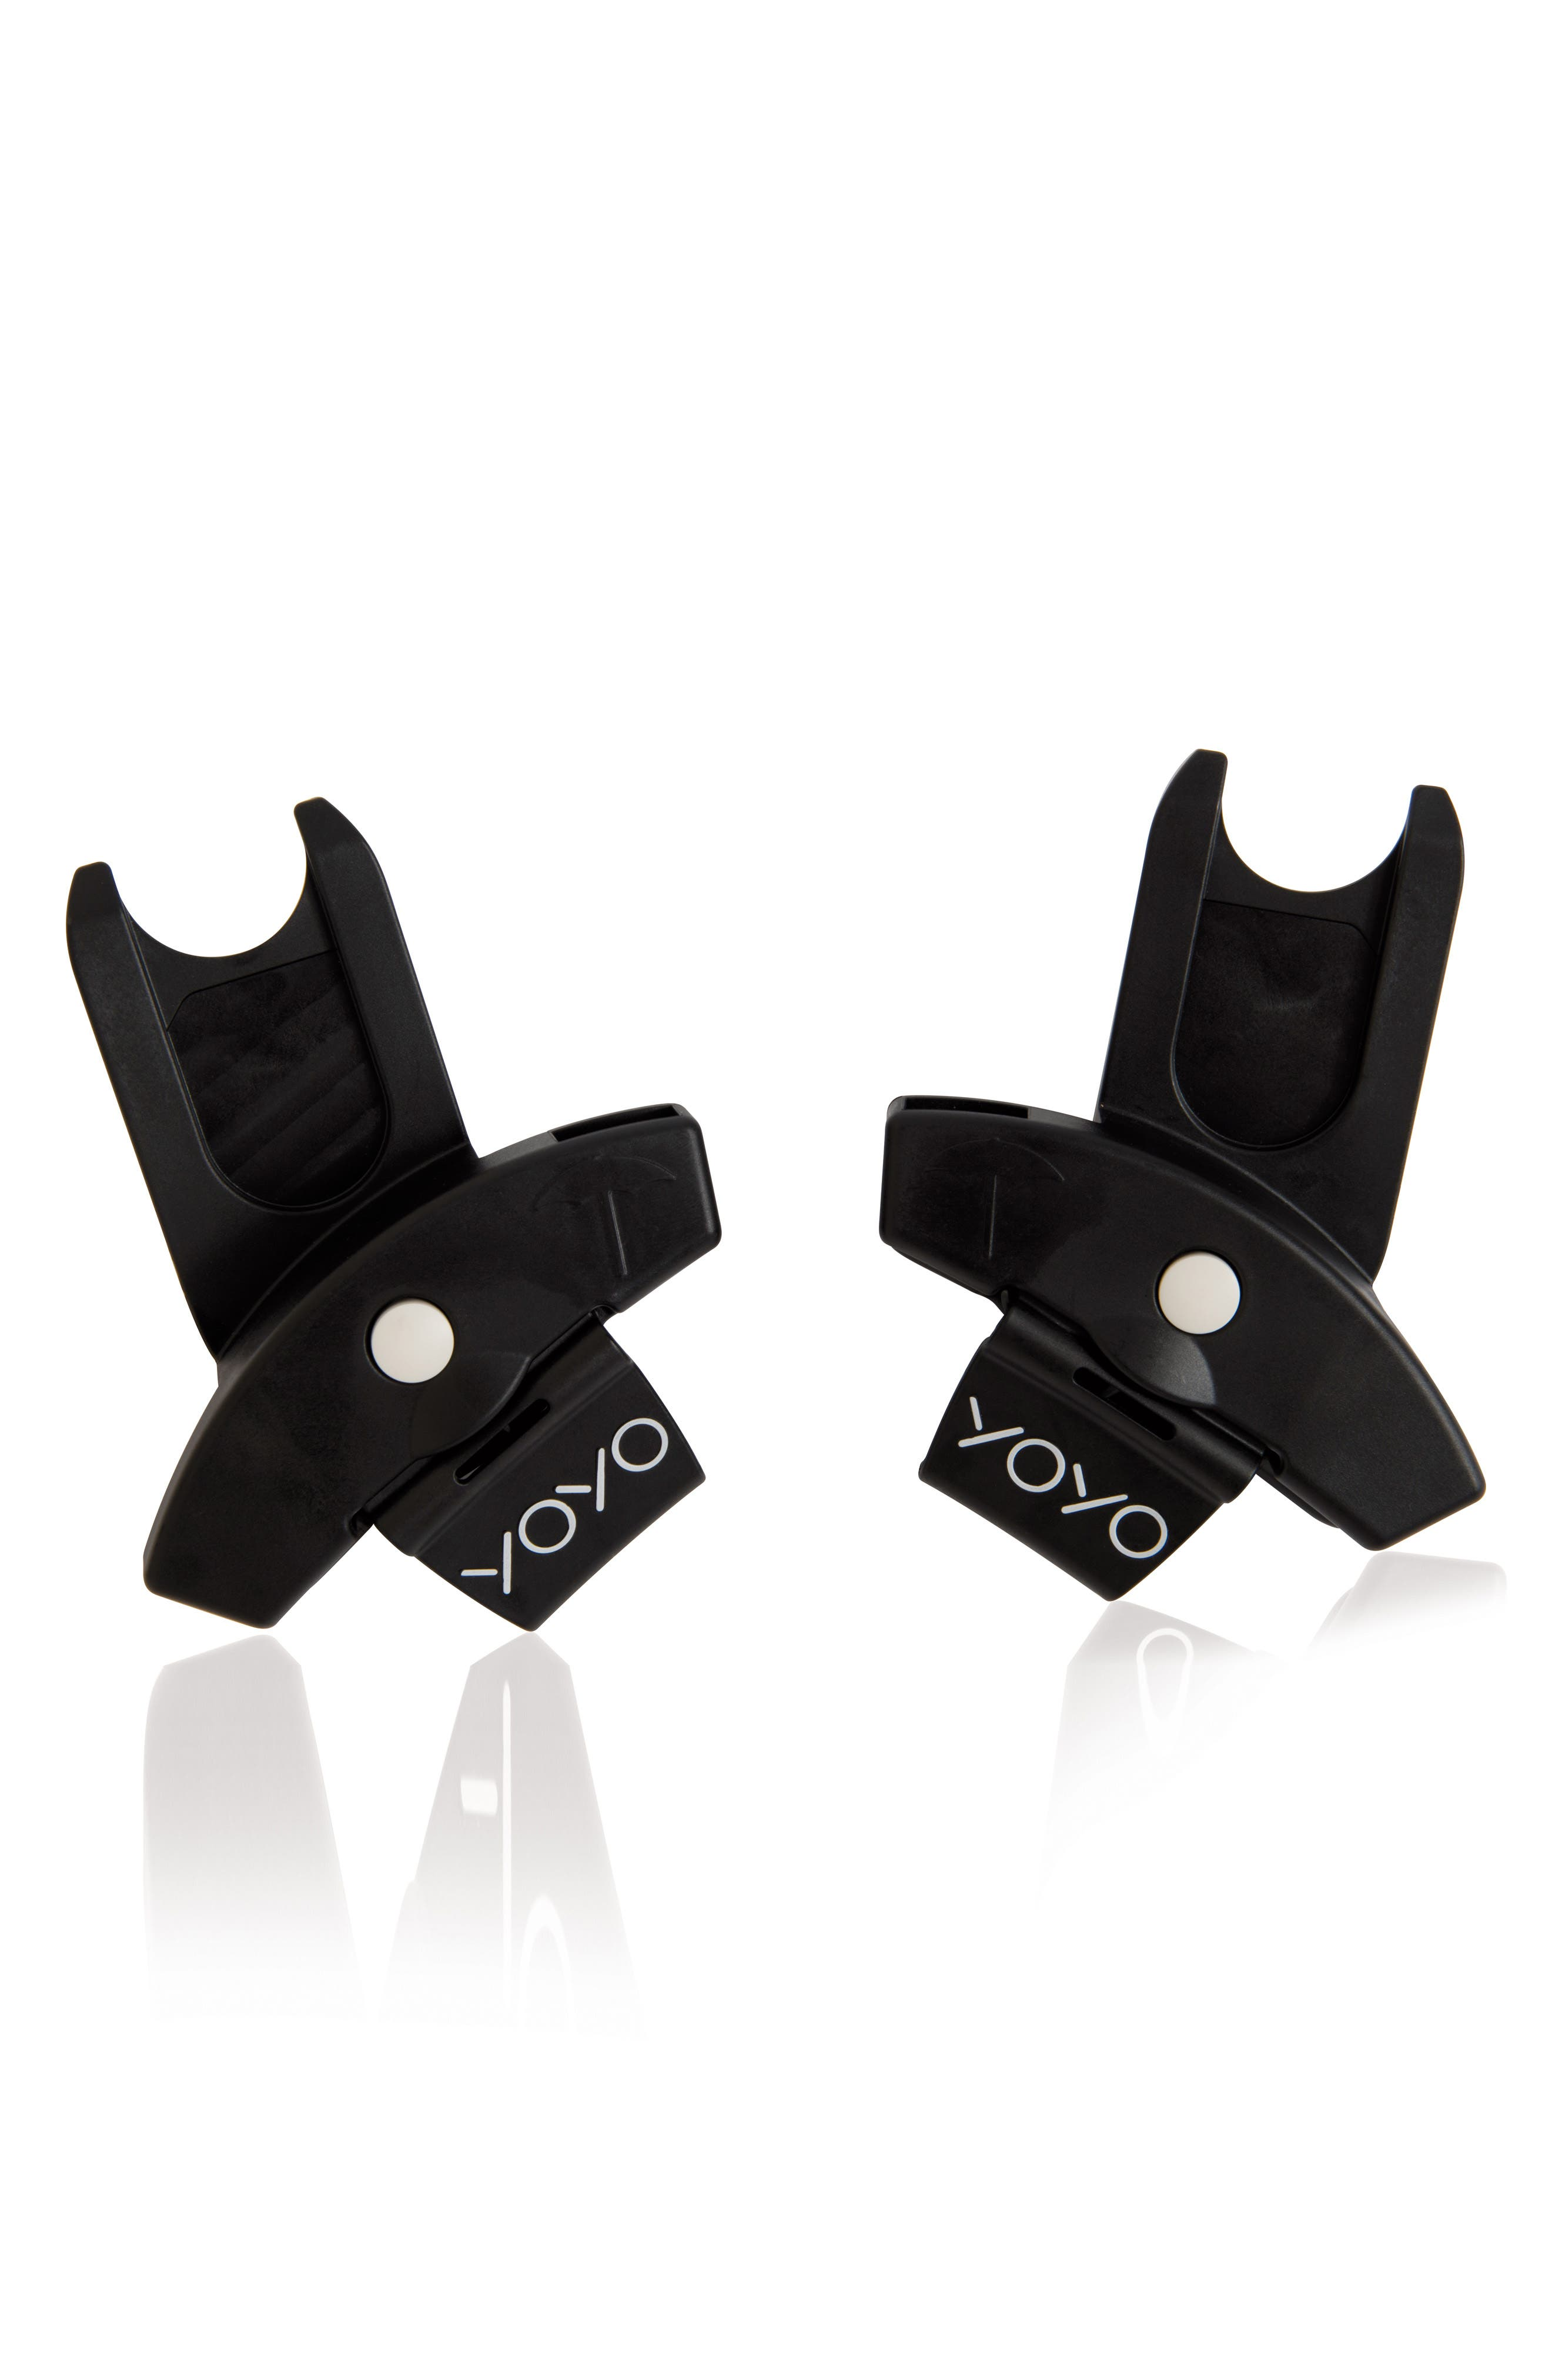 Main Image - Babyzen Adapters for YOYO+ Stroller & Cybex, Nuna and Maxi-Cosi® Infant Car Seats